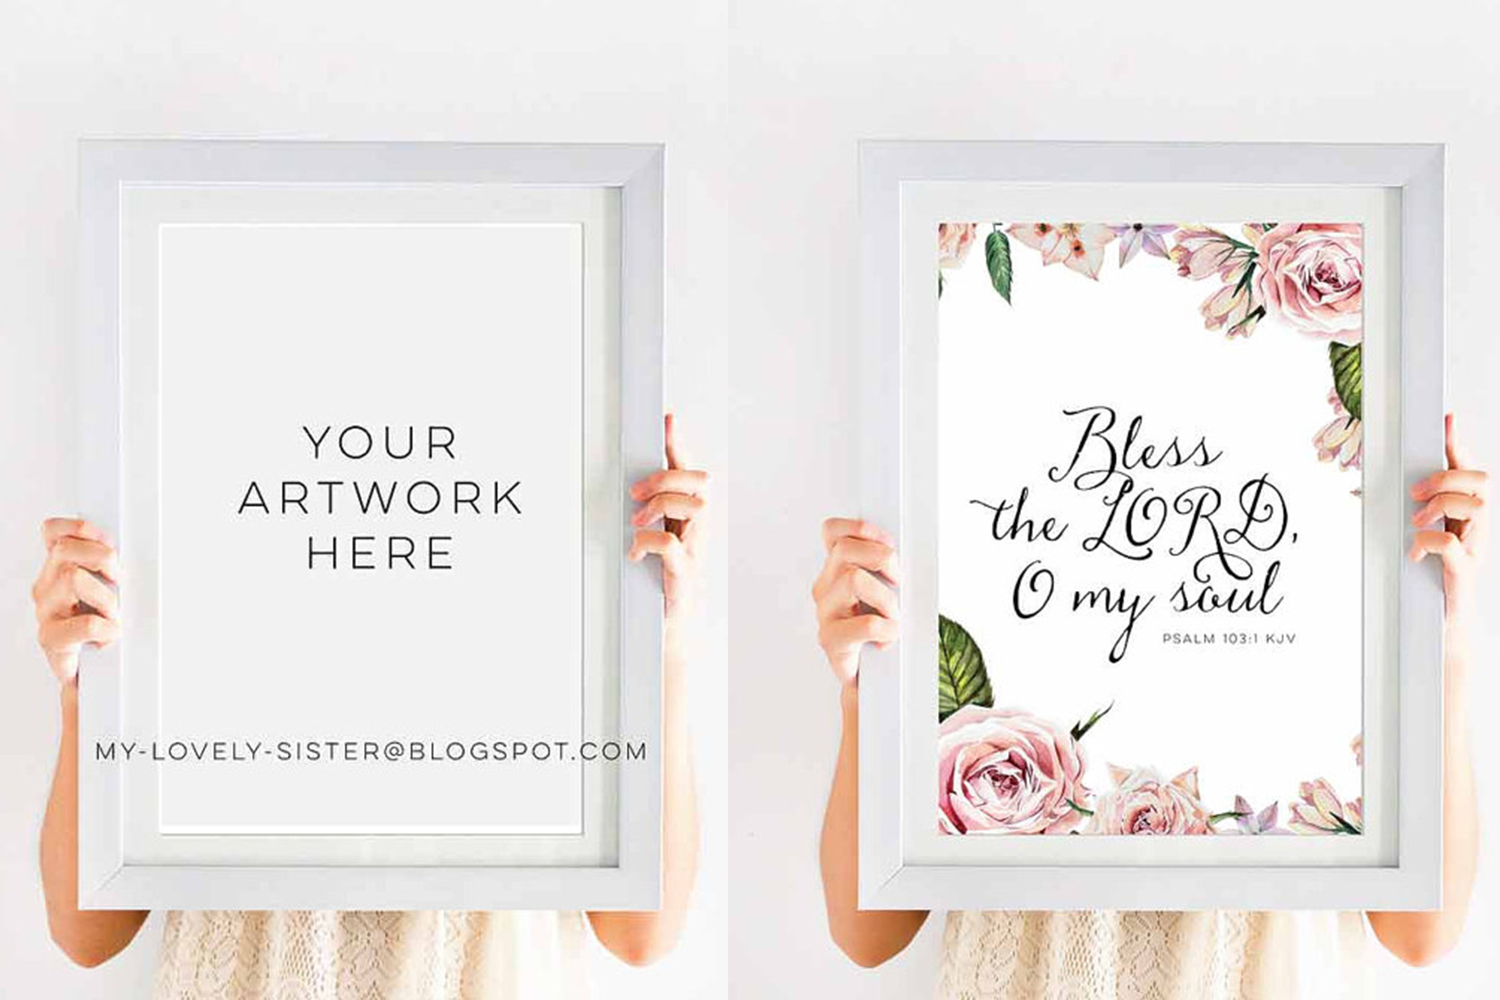 Simple wood frame mock up, Empty White Wooden Frame, White Wood Display Empty Frame, Simple Blank Empty Frames, Blank Frame Mockups example image 3